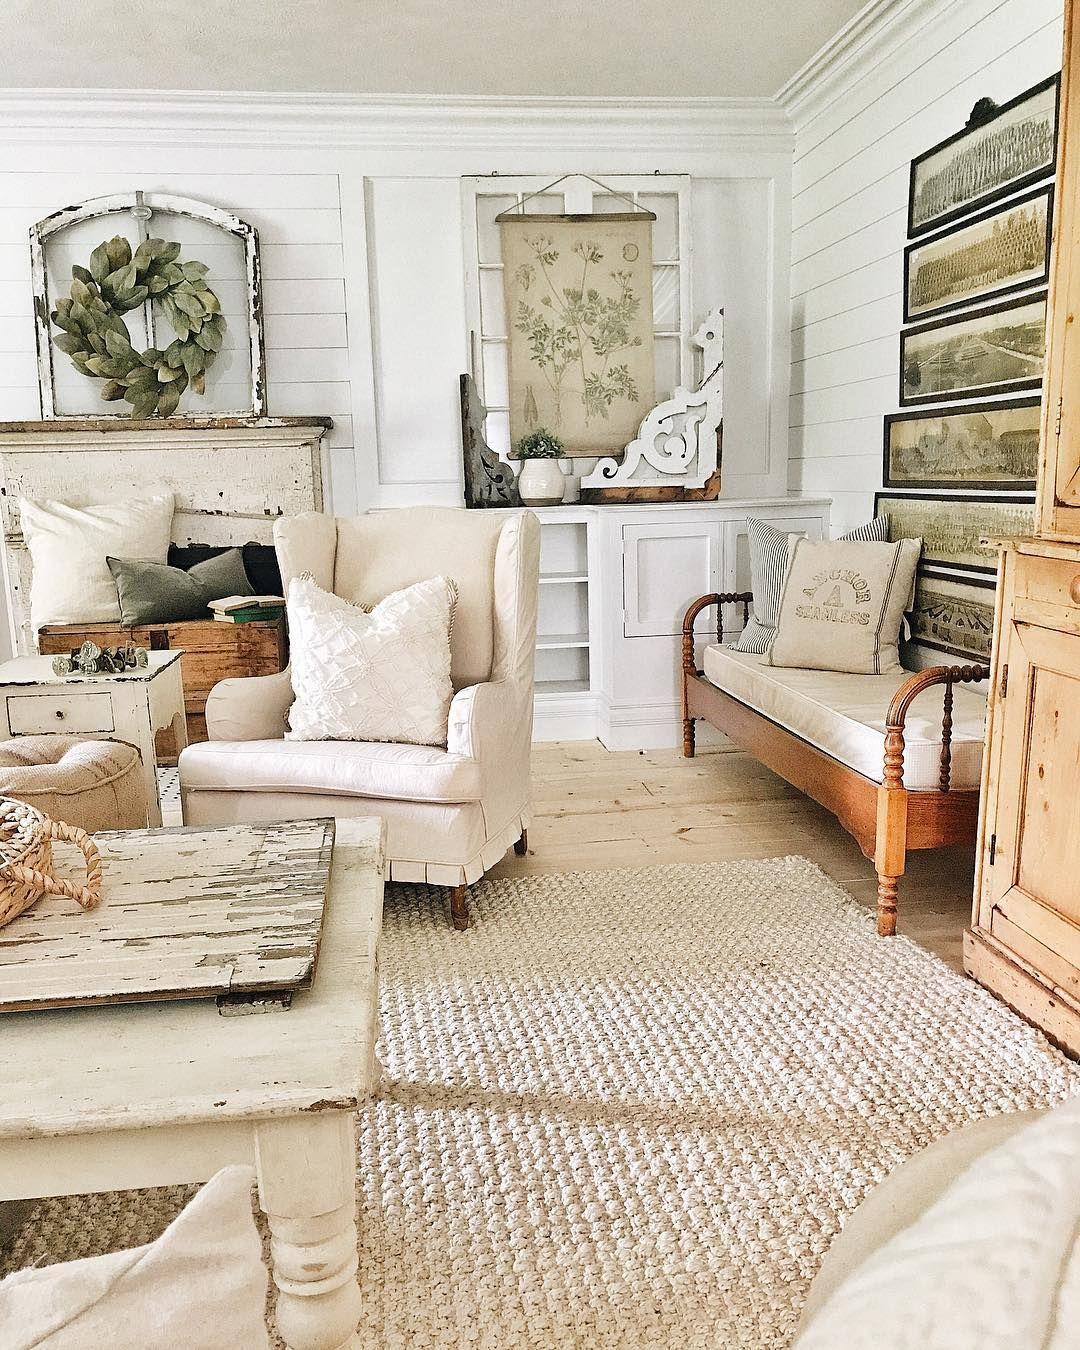 Pin by Helena Boers on Vintage Chic/ Cottage Style/French/Country ...